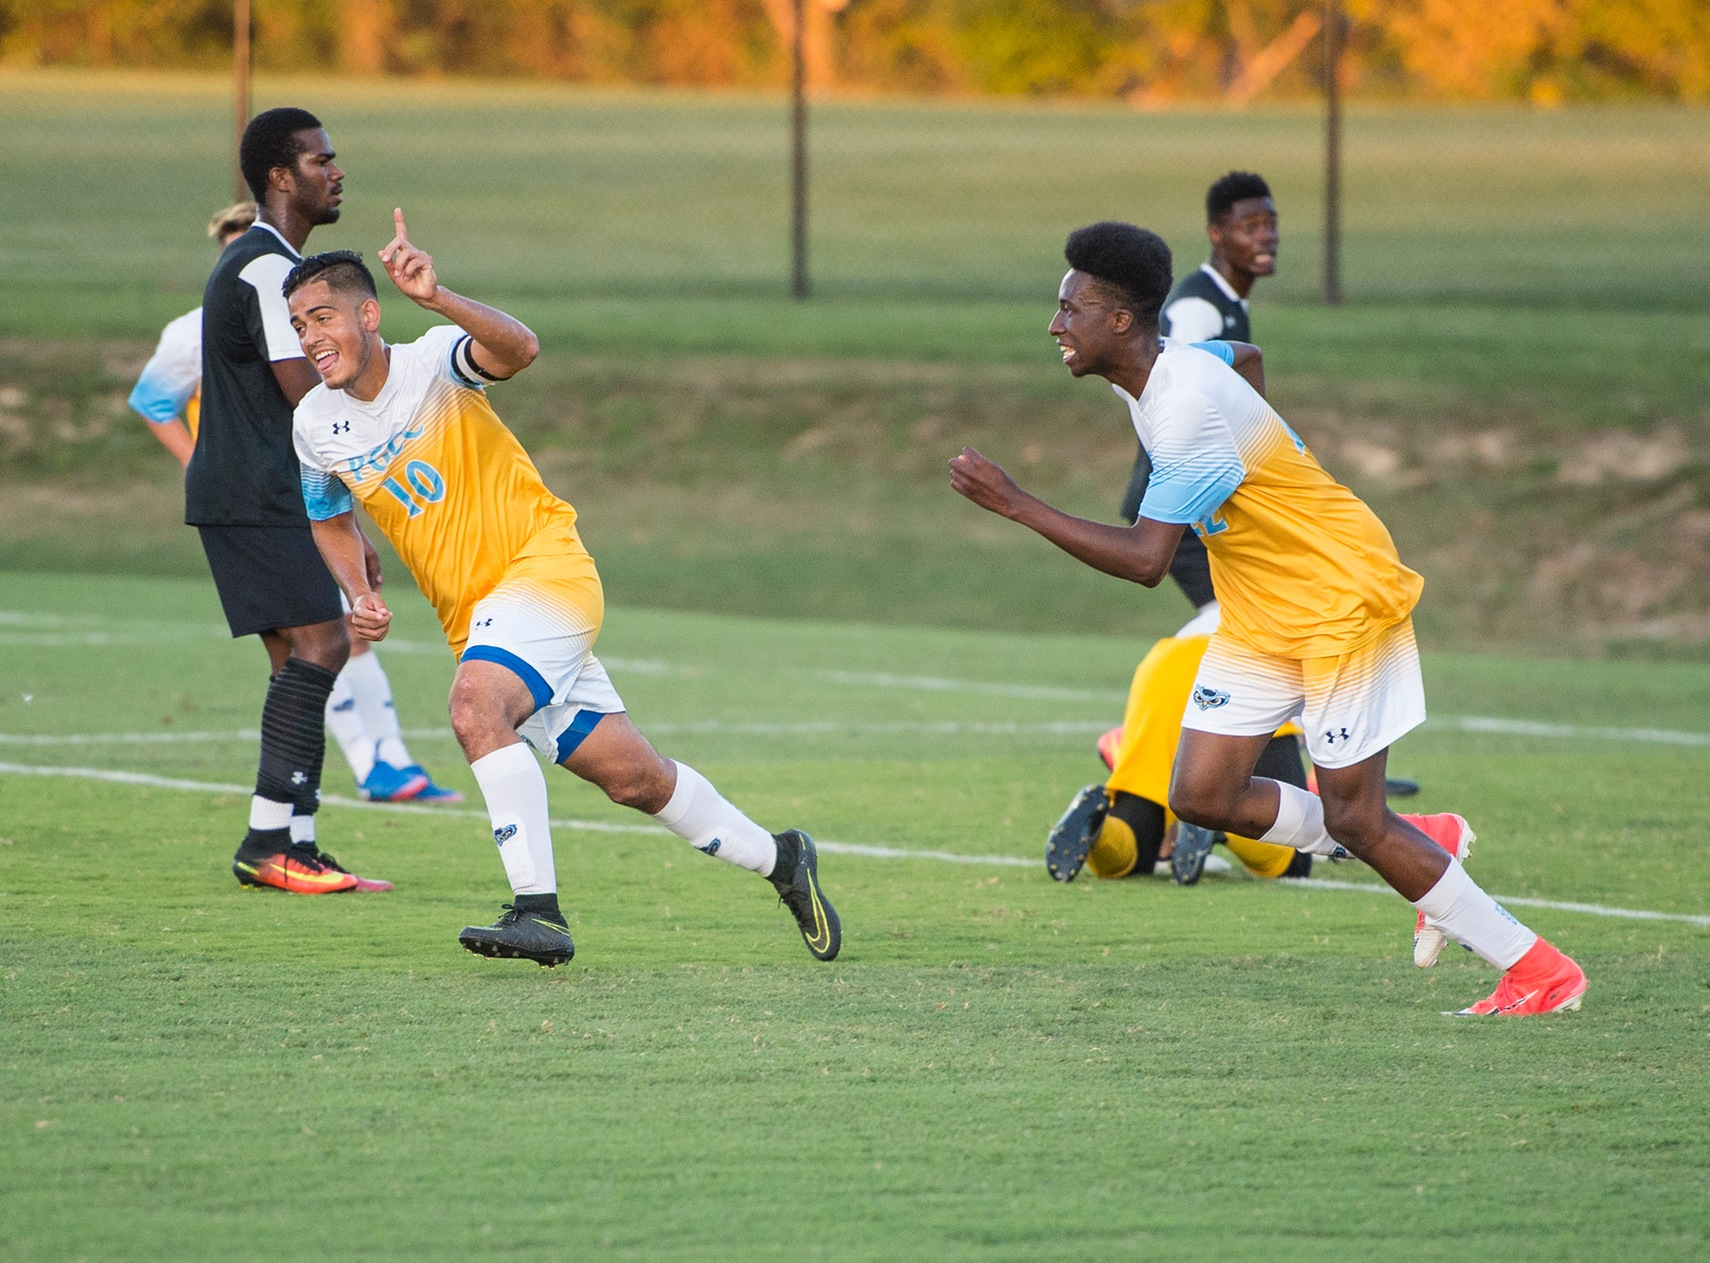 Edwin Claros' Two Goals And An Assist Surges Prince George's Past Frederick, 3-1